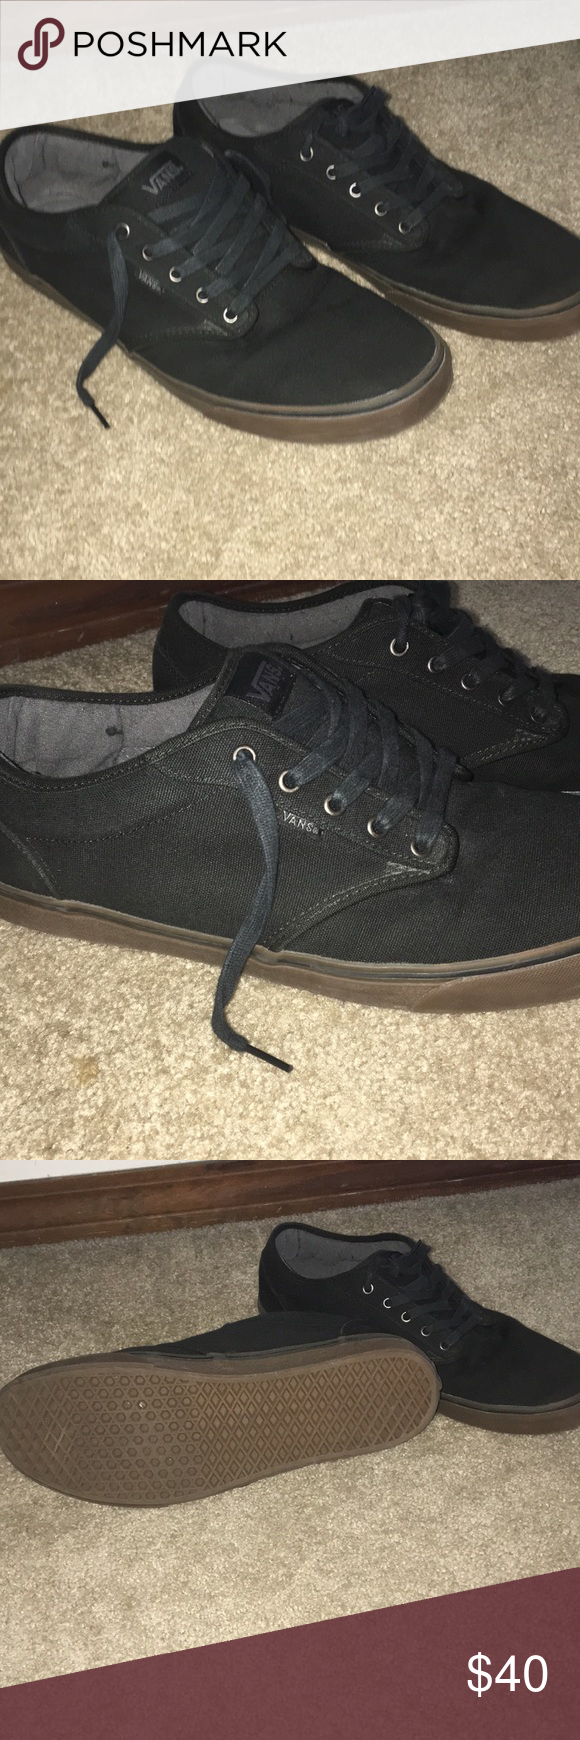 Men s black vans Black vans with brown sole. Worn only once in perfect  condition Vans Shoes Sneakers b98764ced